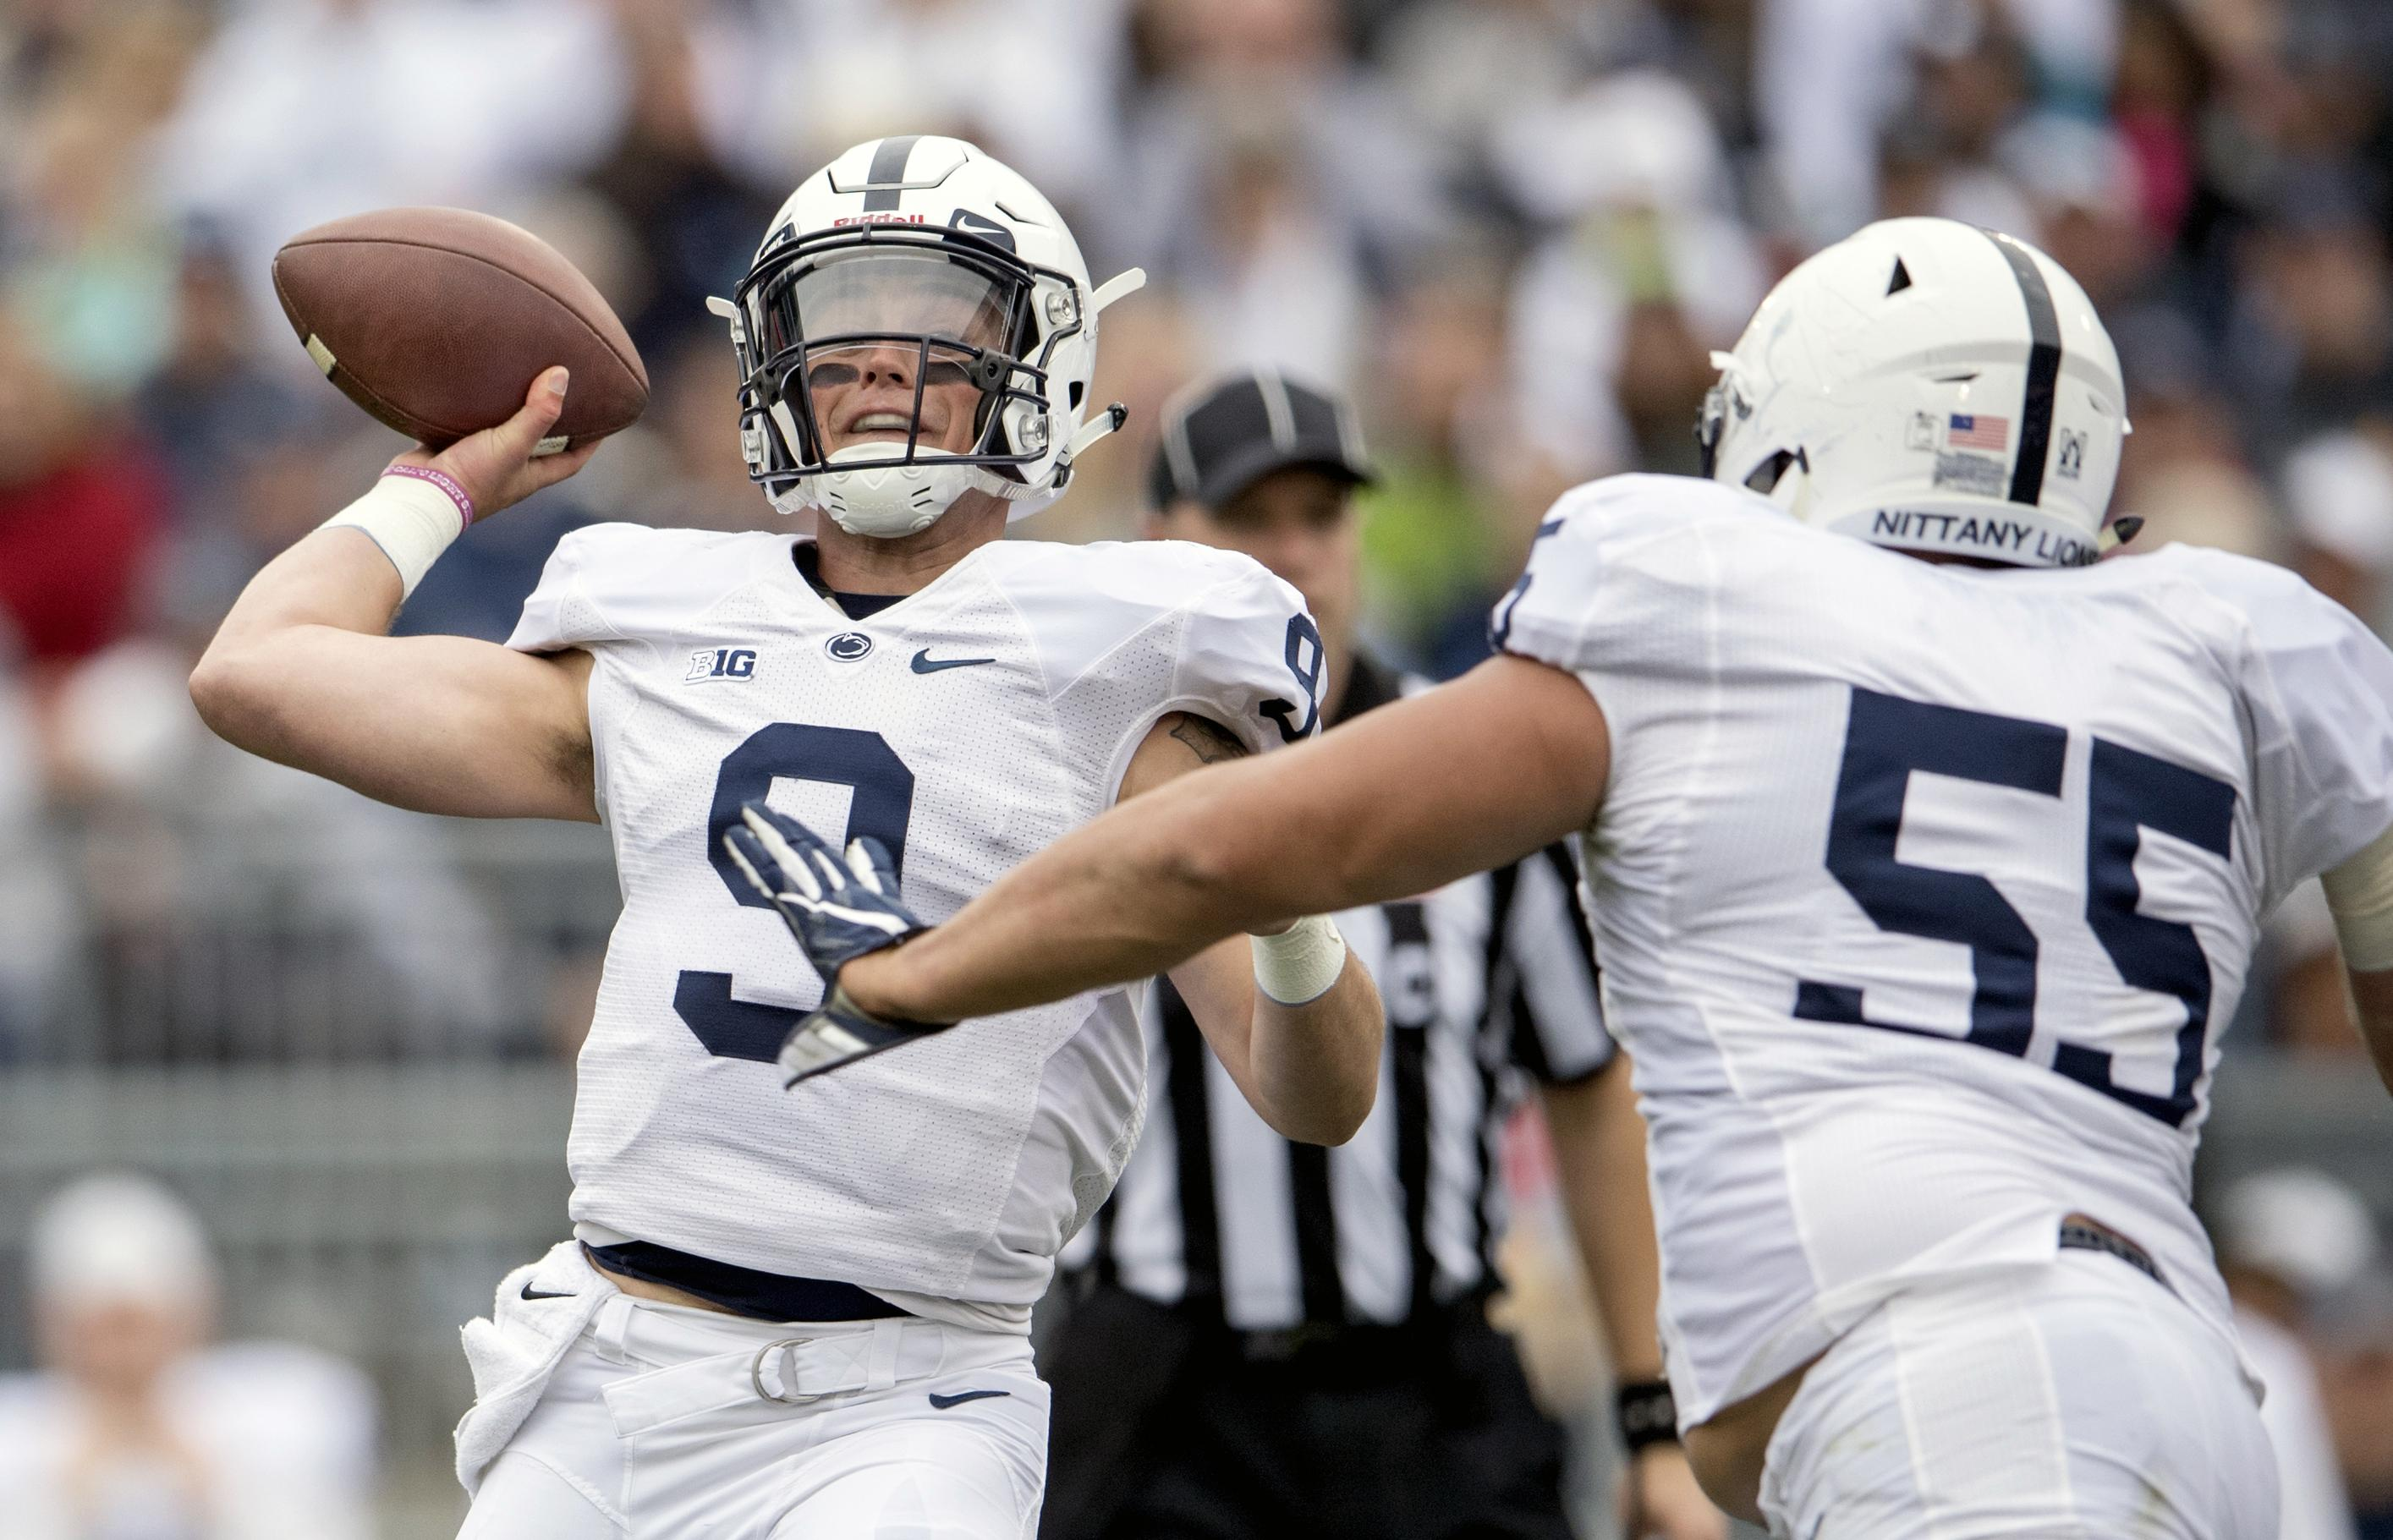 Penn_state_spring_game_football_98219